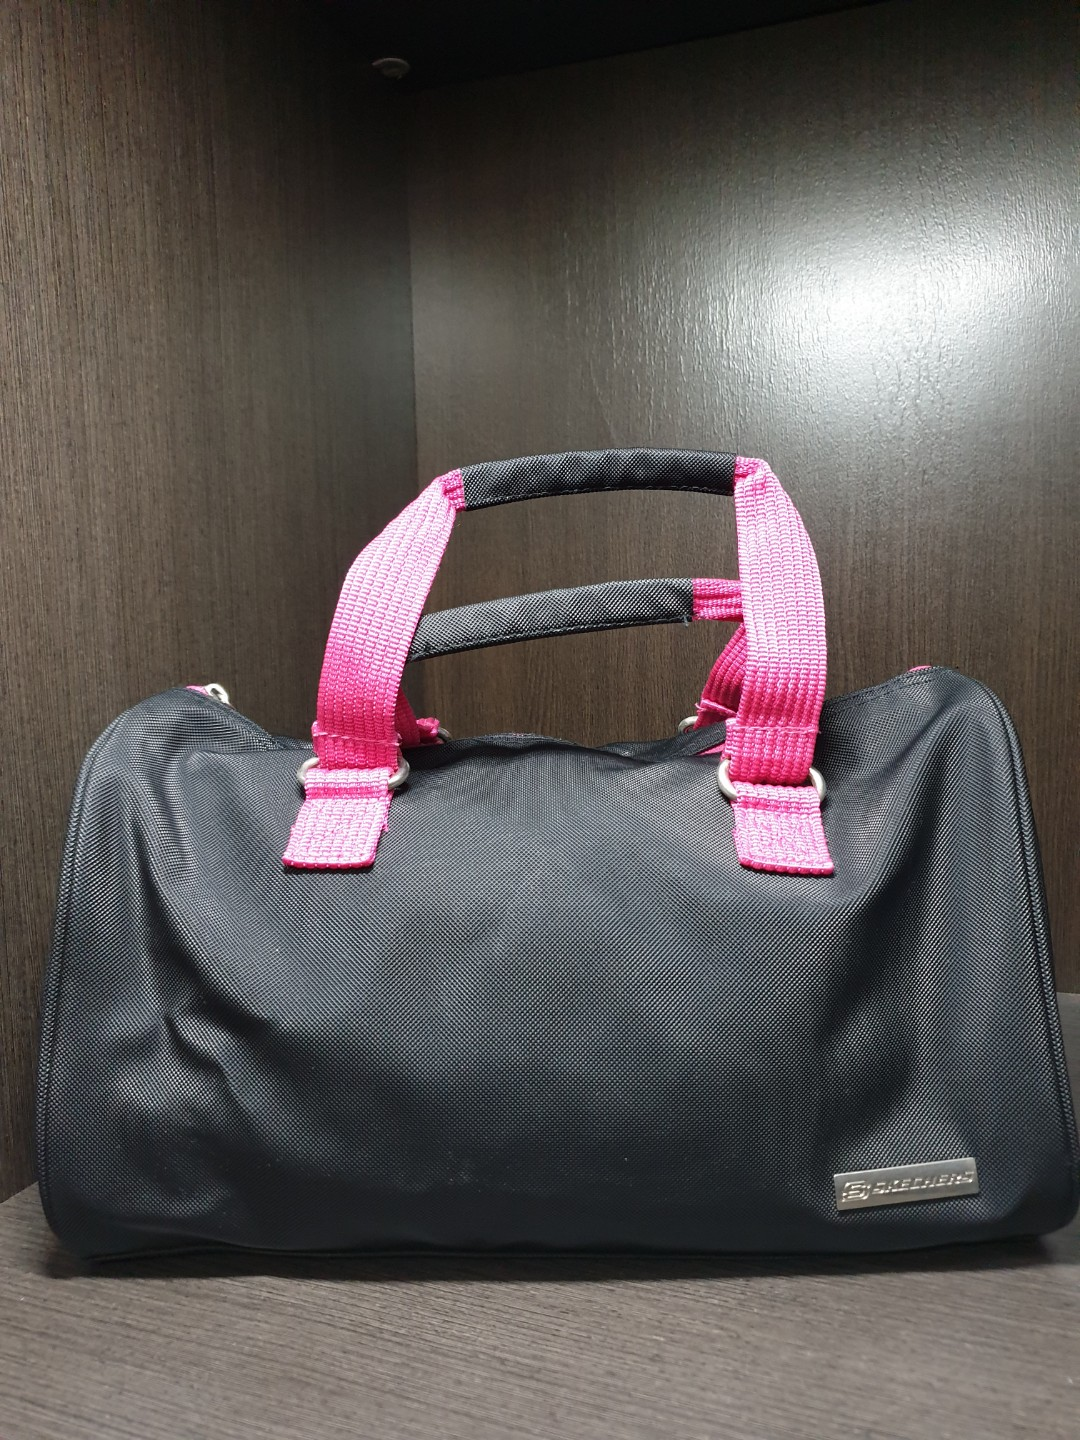 9a4f0d4a3df Skechers Gym Bag Black(pink interior), Women s Fashion, Bags   Wallets,  Handbags on Carousell